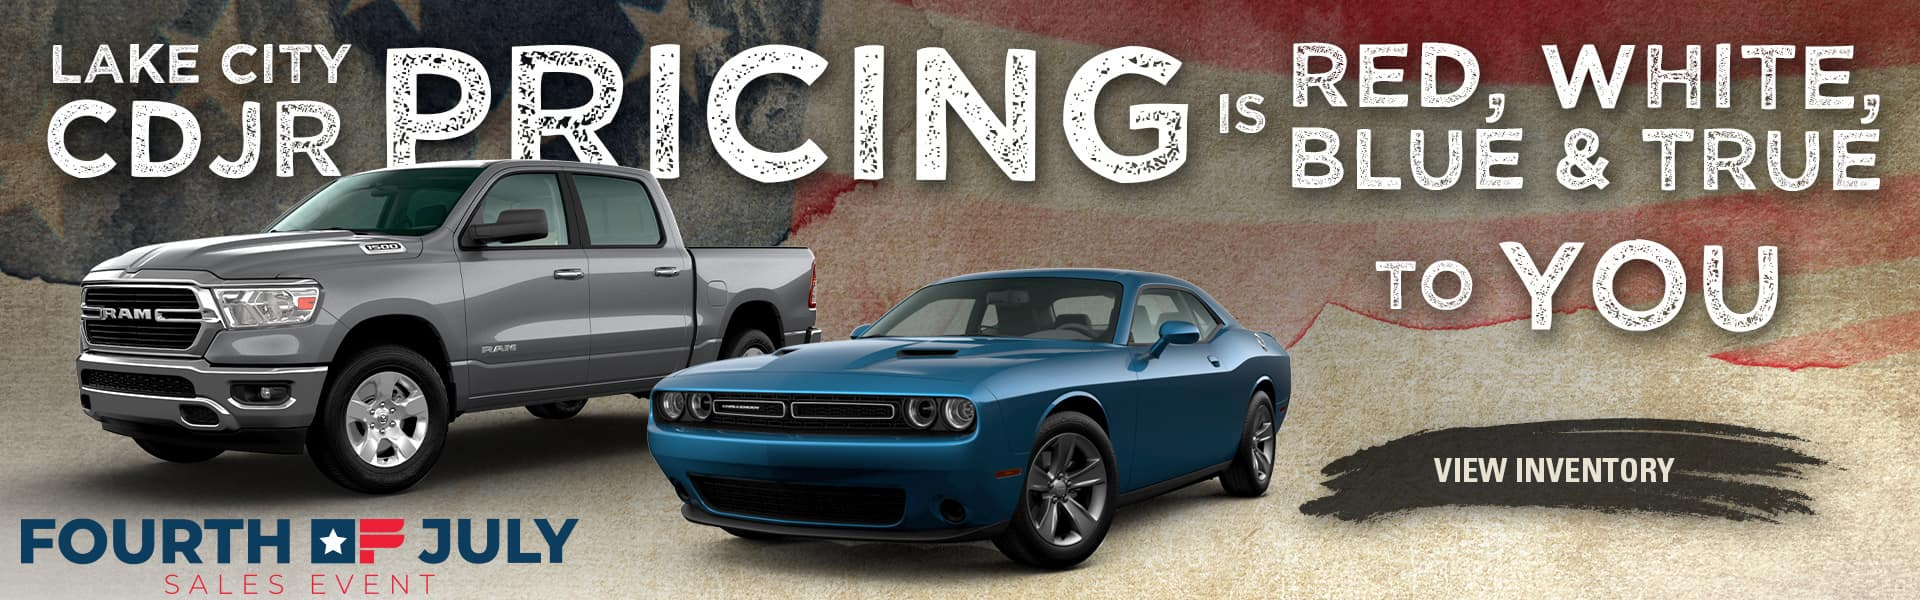 Lake City CDJR Pricing Is Red, White, Blue & True To You! | Fourth of July Sales Event